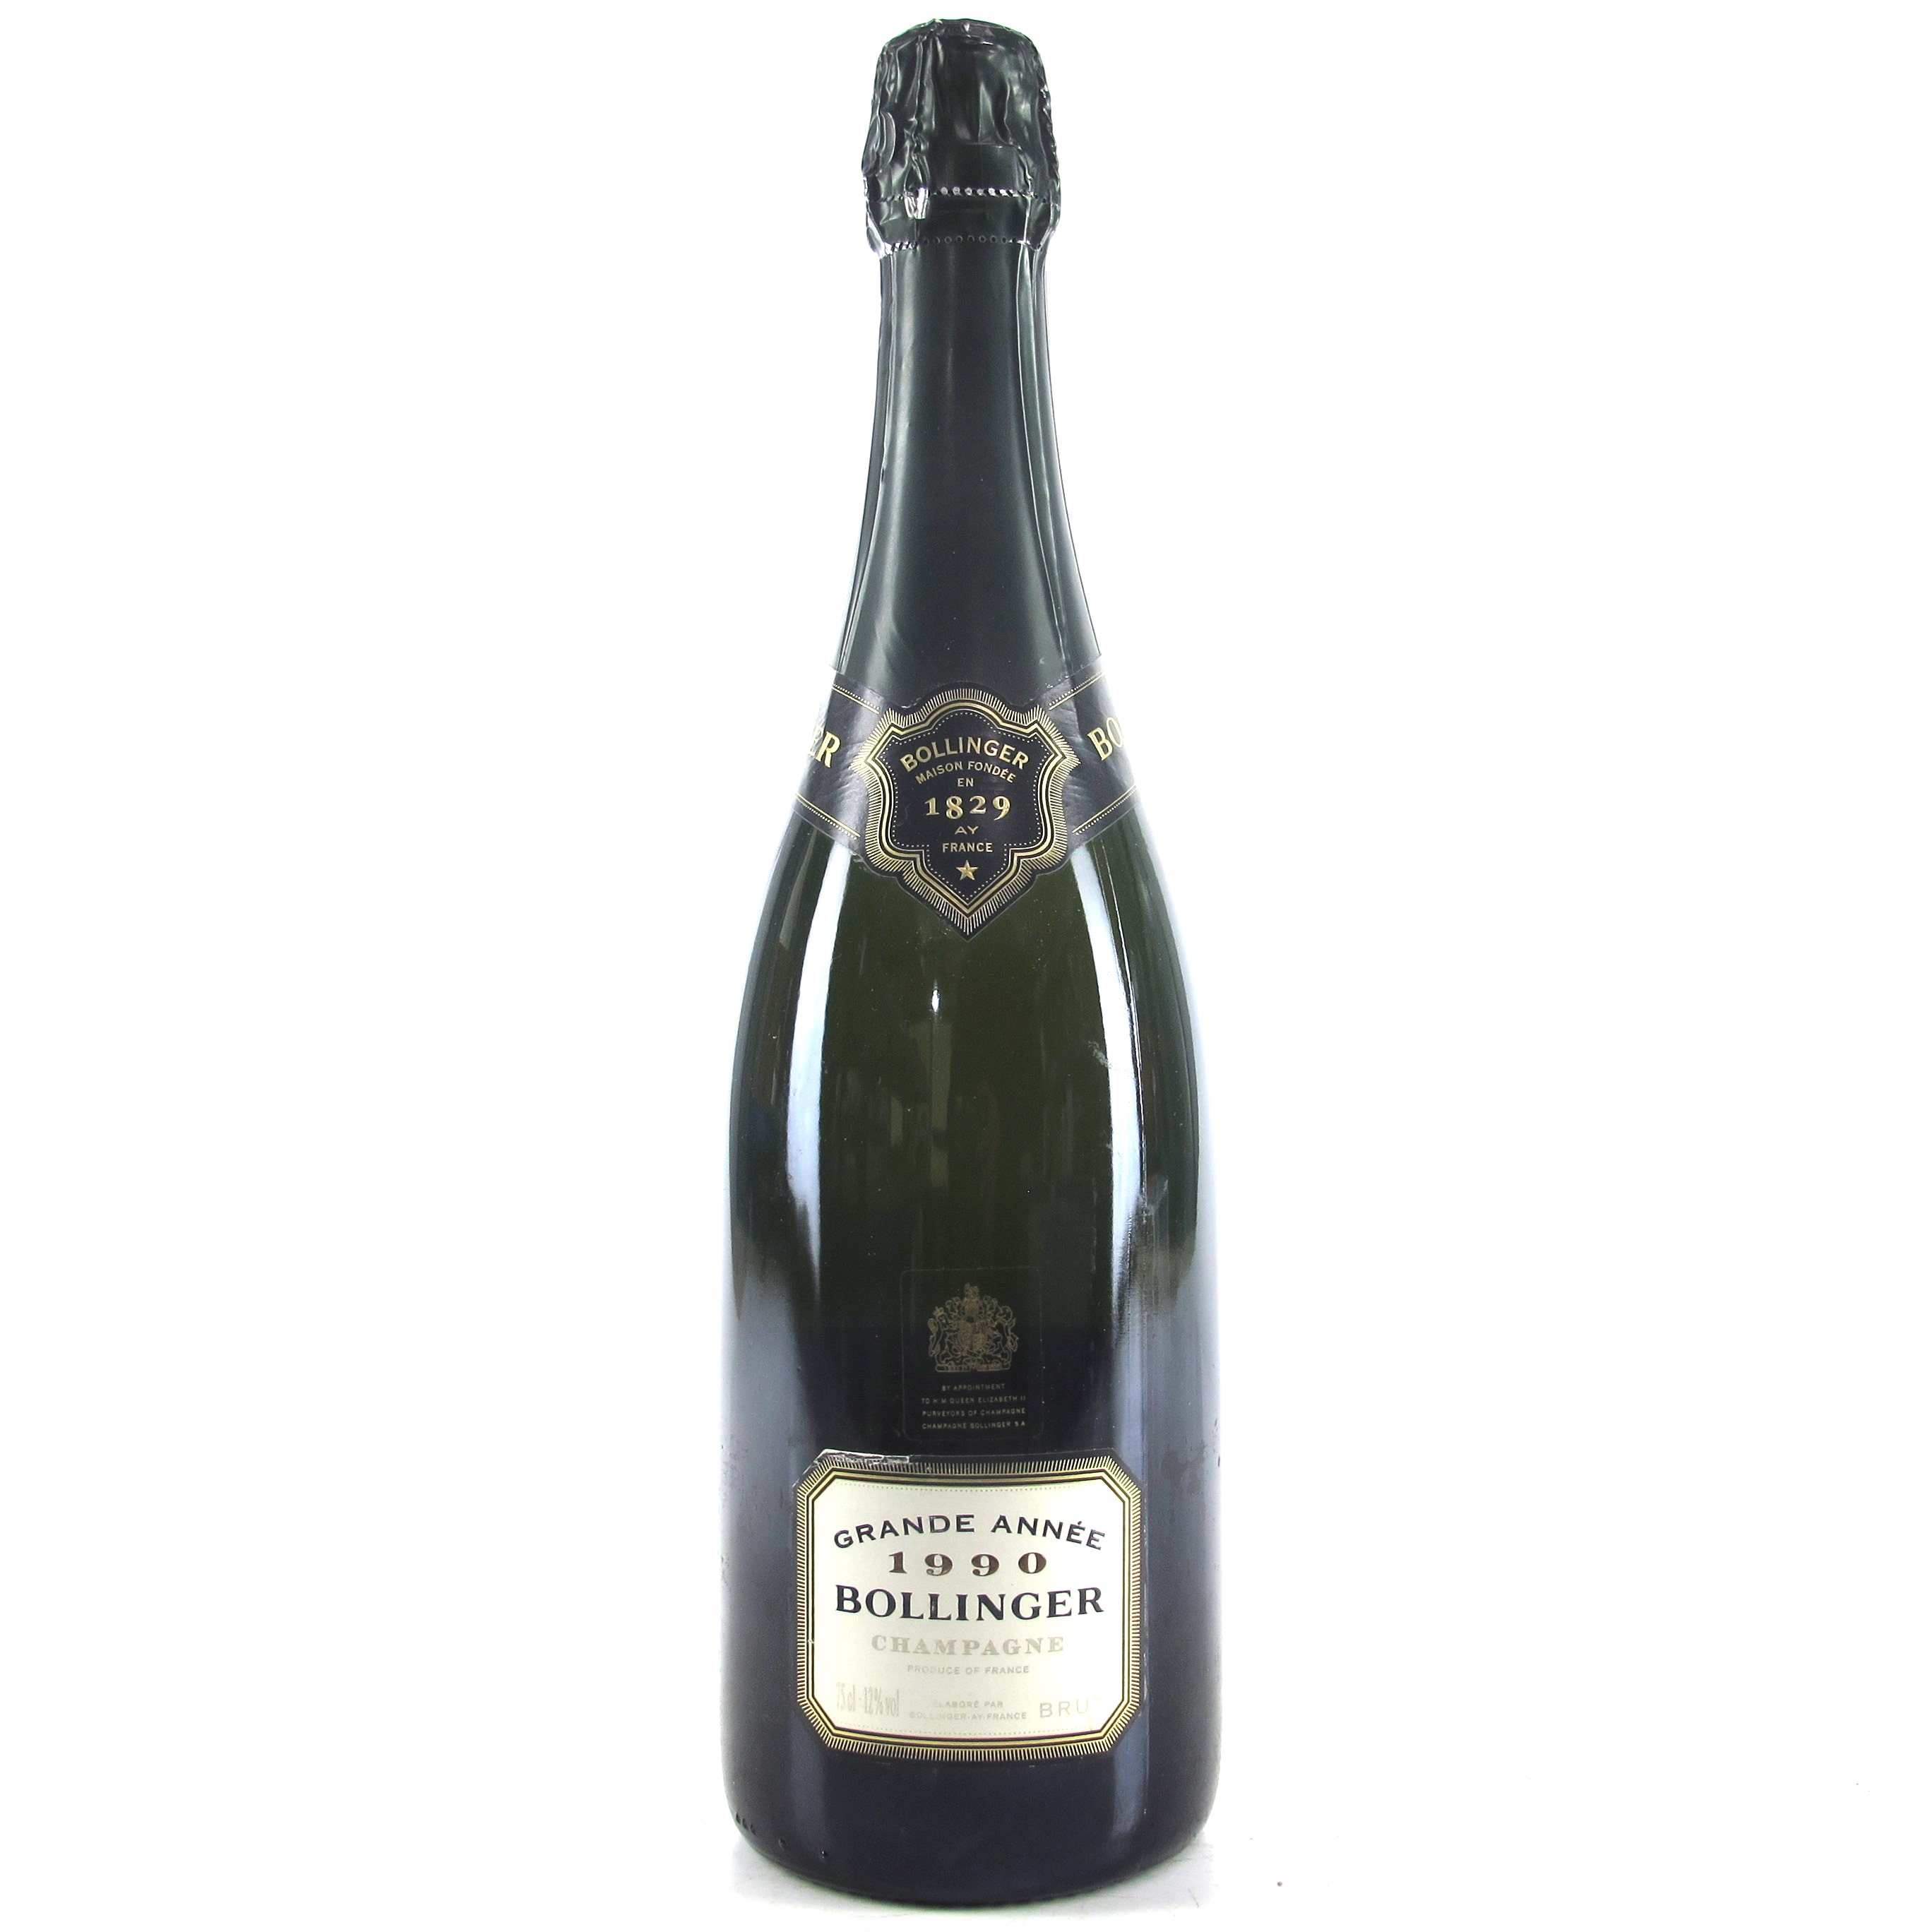 BOLLINGER GRAND ANEE 1990 CHAMPAGNE 75CL